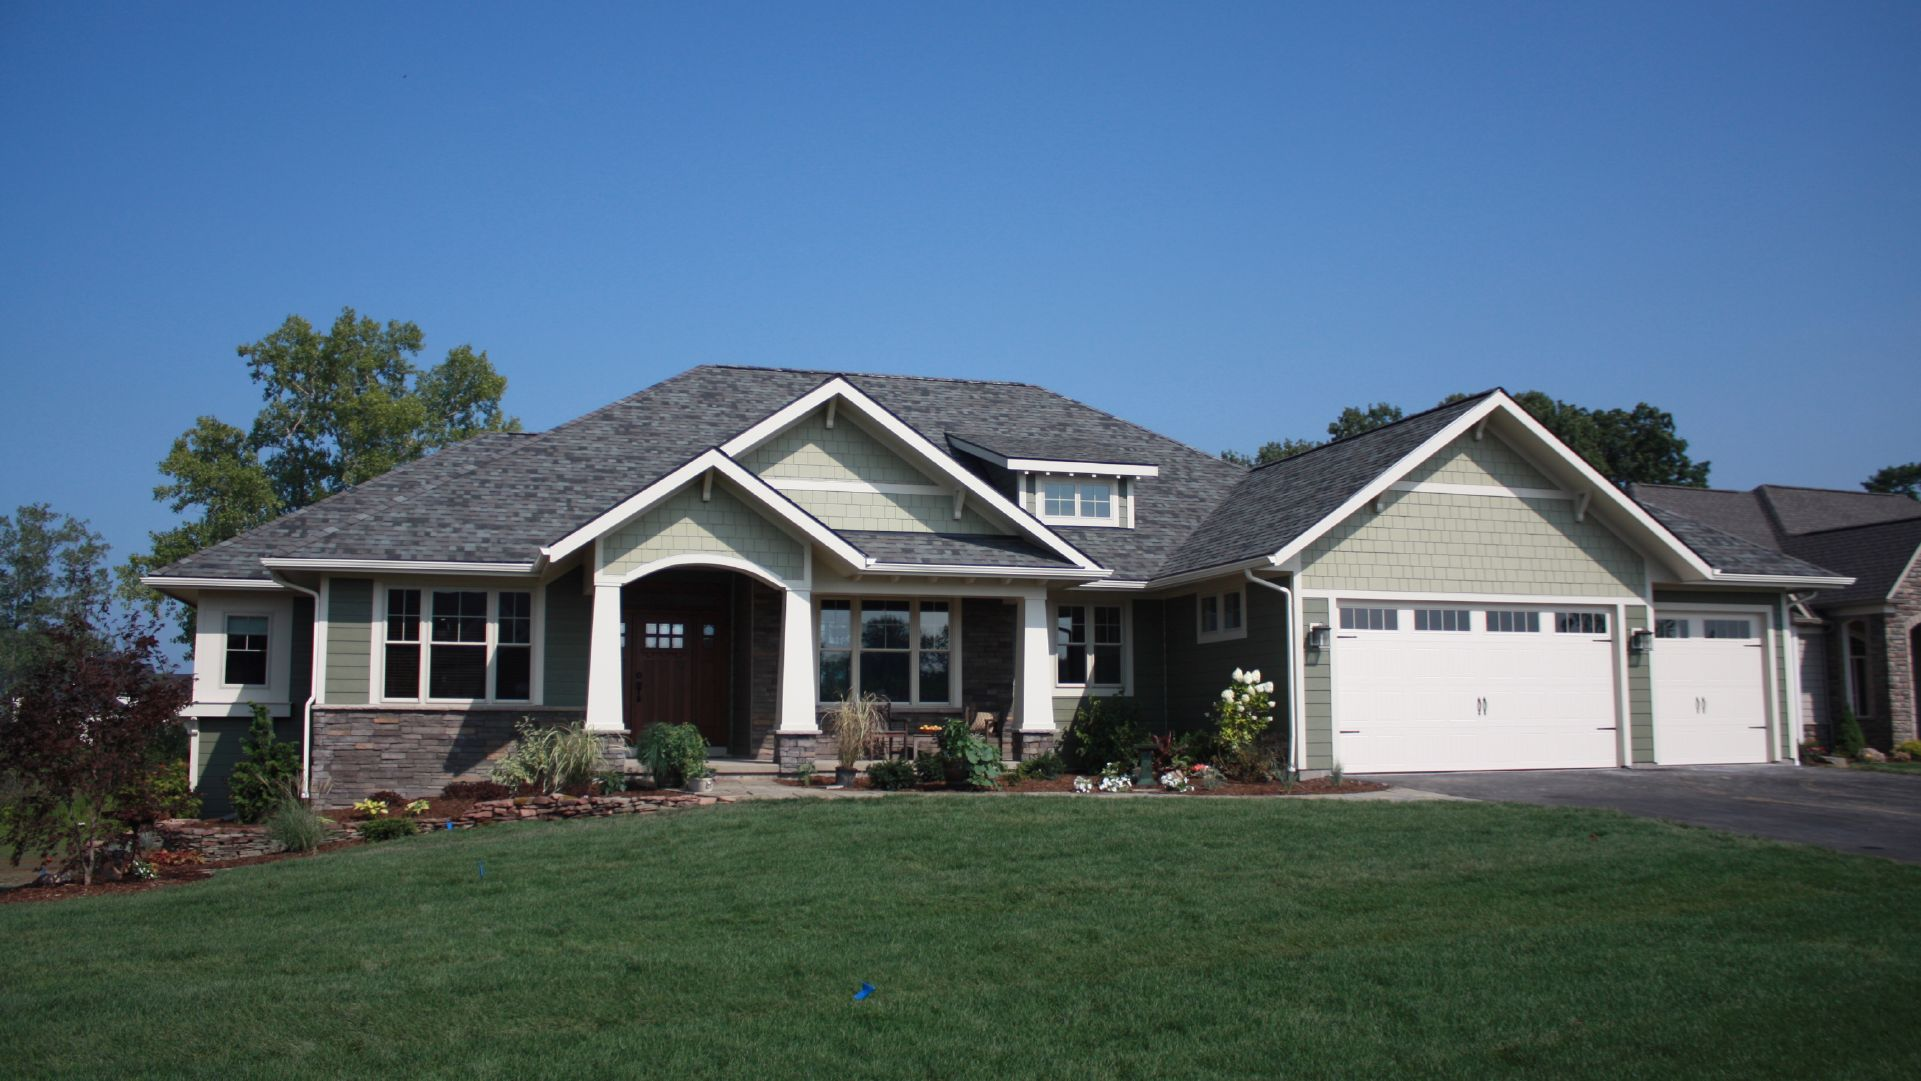 home plans that fit your life call carini today for a free consultation - Residential Home Designs